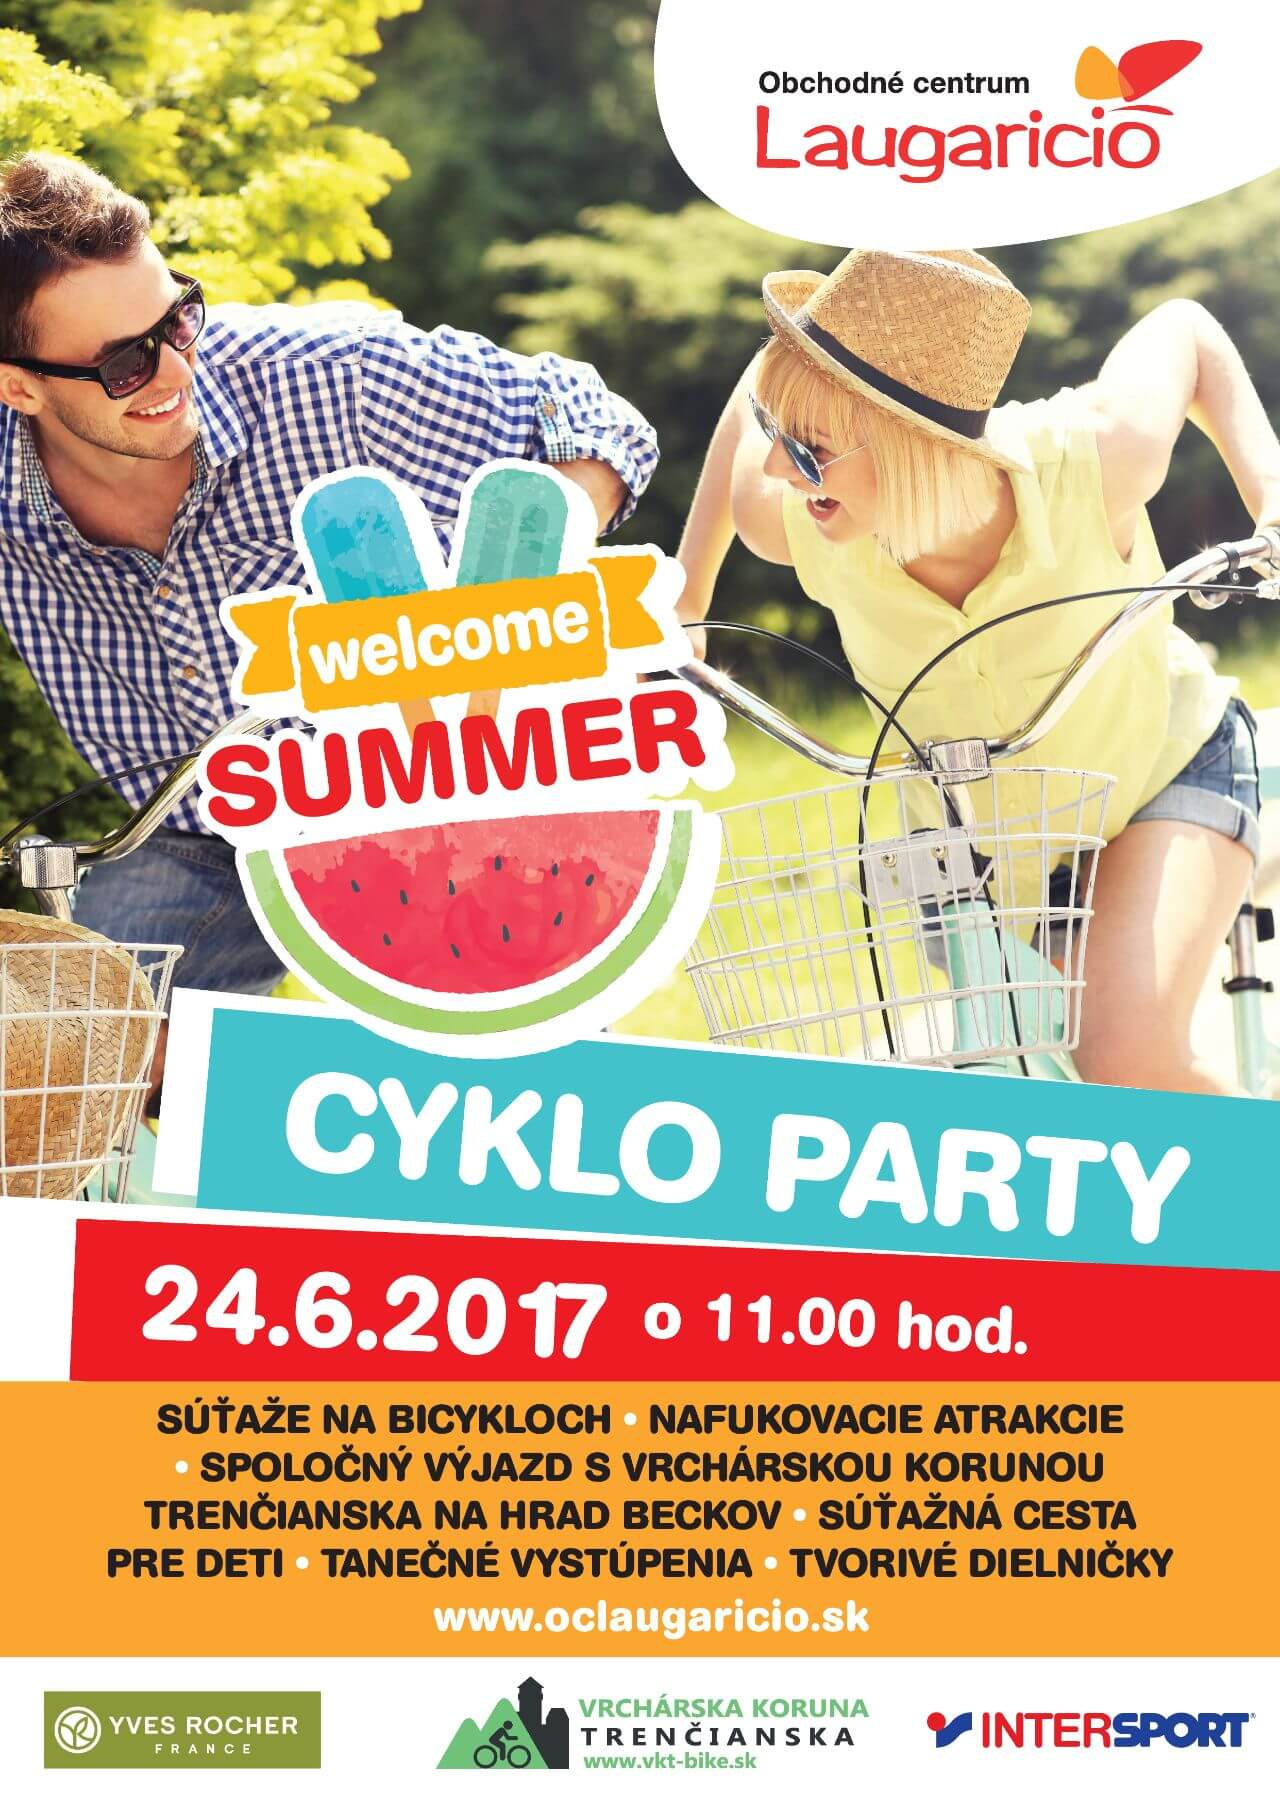 Welcome Summer Cyklo Party